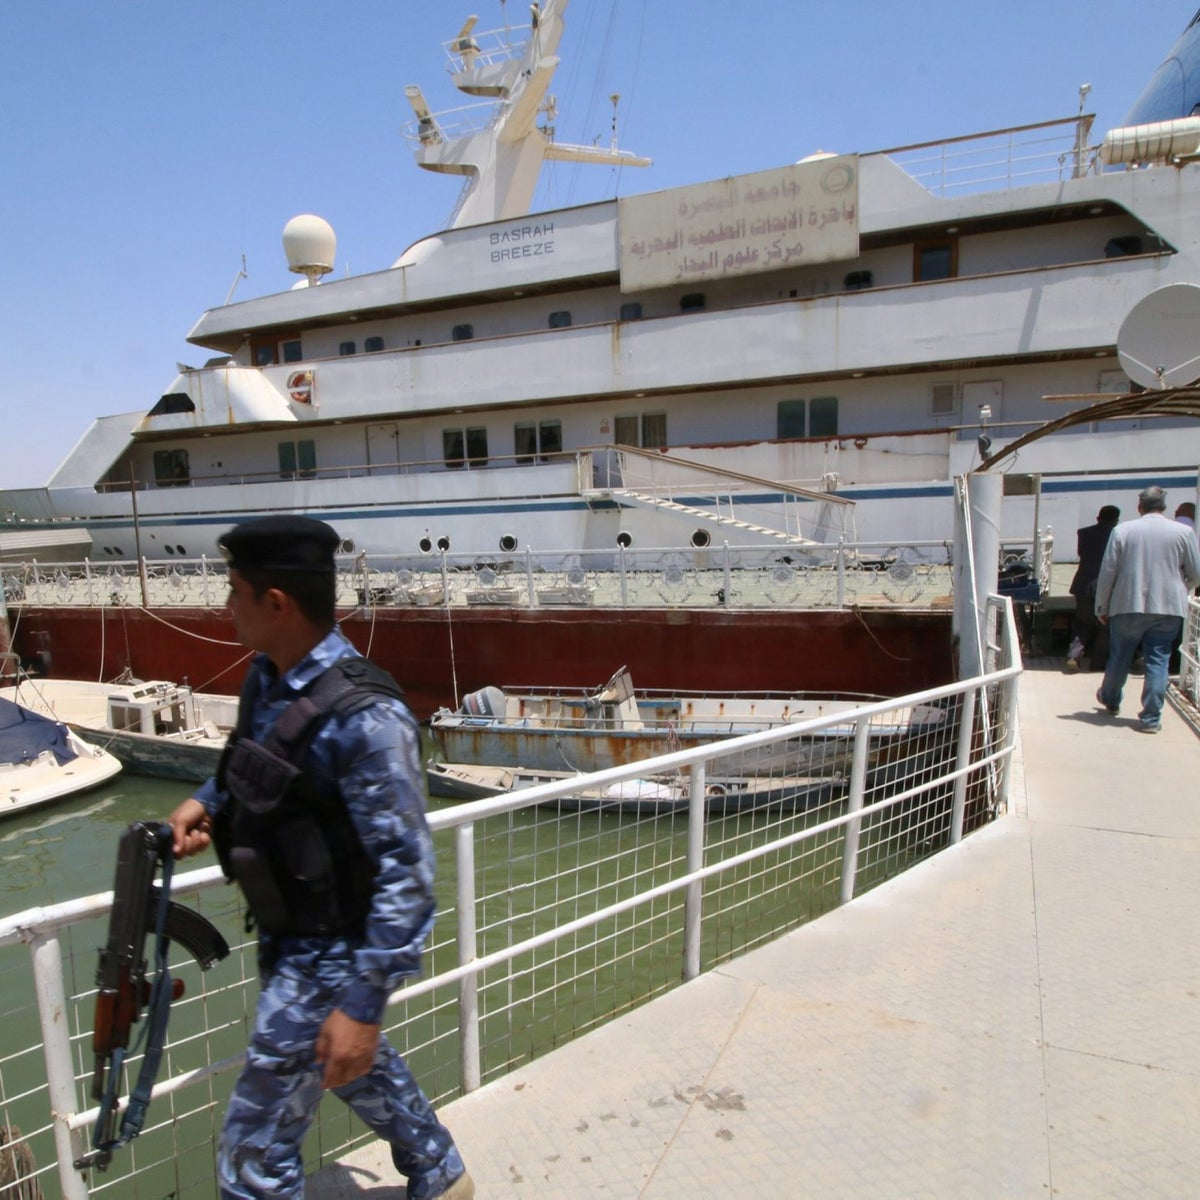 """An Iraqi policeman walks past the yacht called """"Basrah Breeze"""", once owned by former Iraqi president Saddam Hussein, who was toppled in a U.S.-led invasion in 2003, in the southern port of Basra, Iraq May 14, 2018."""